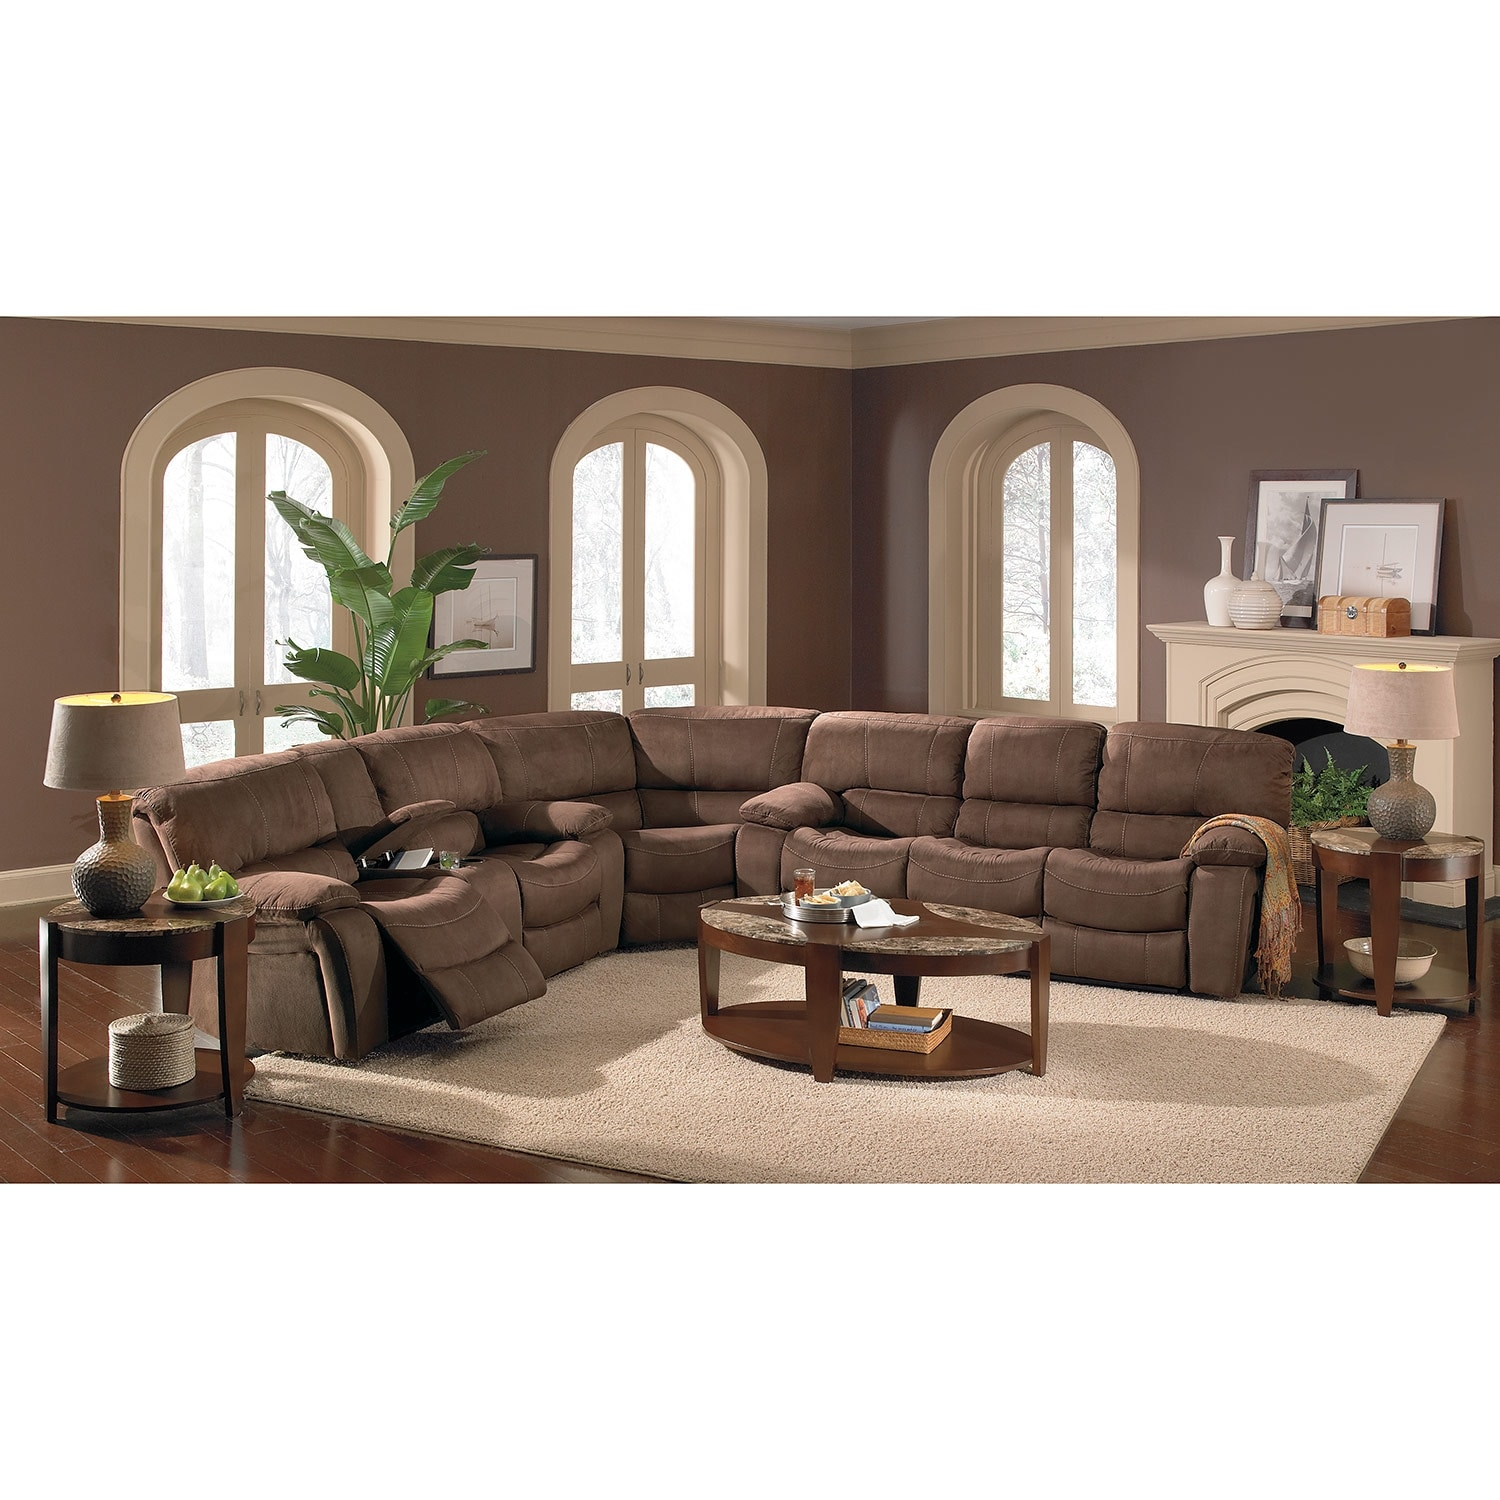 Grove Park Upholstery 3 Pc Reclining Sectional Value City Furniture